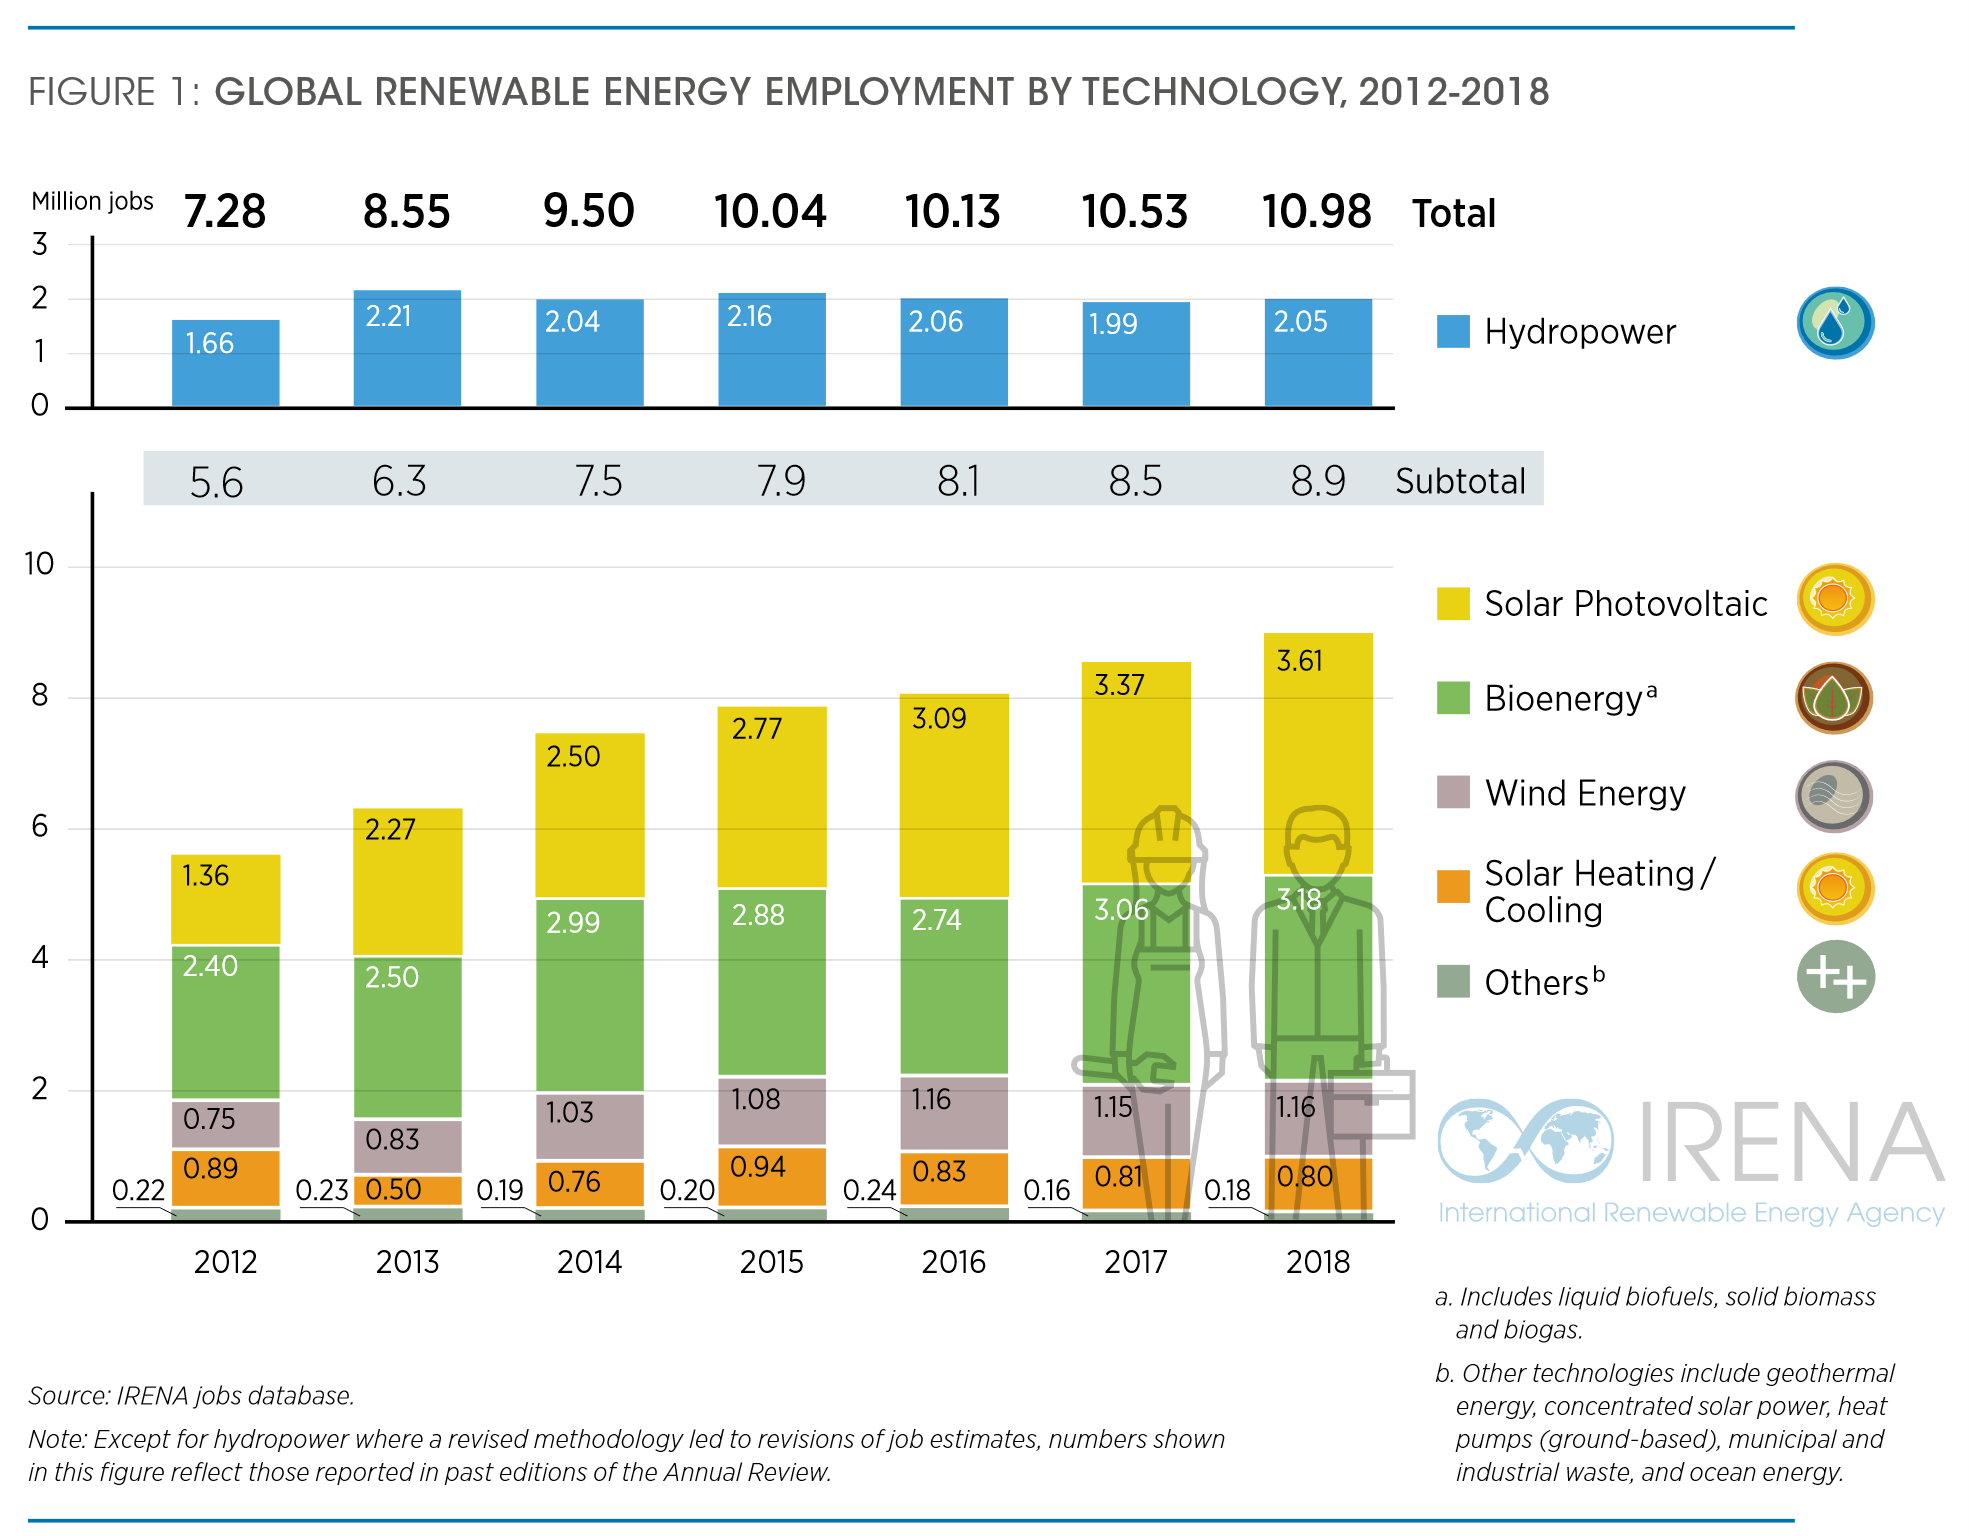 Global RE Employment by Technology, 2012-2018